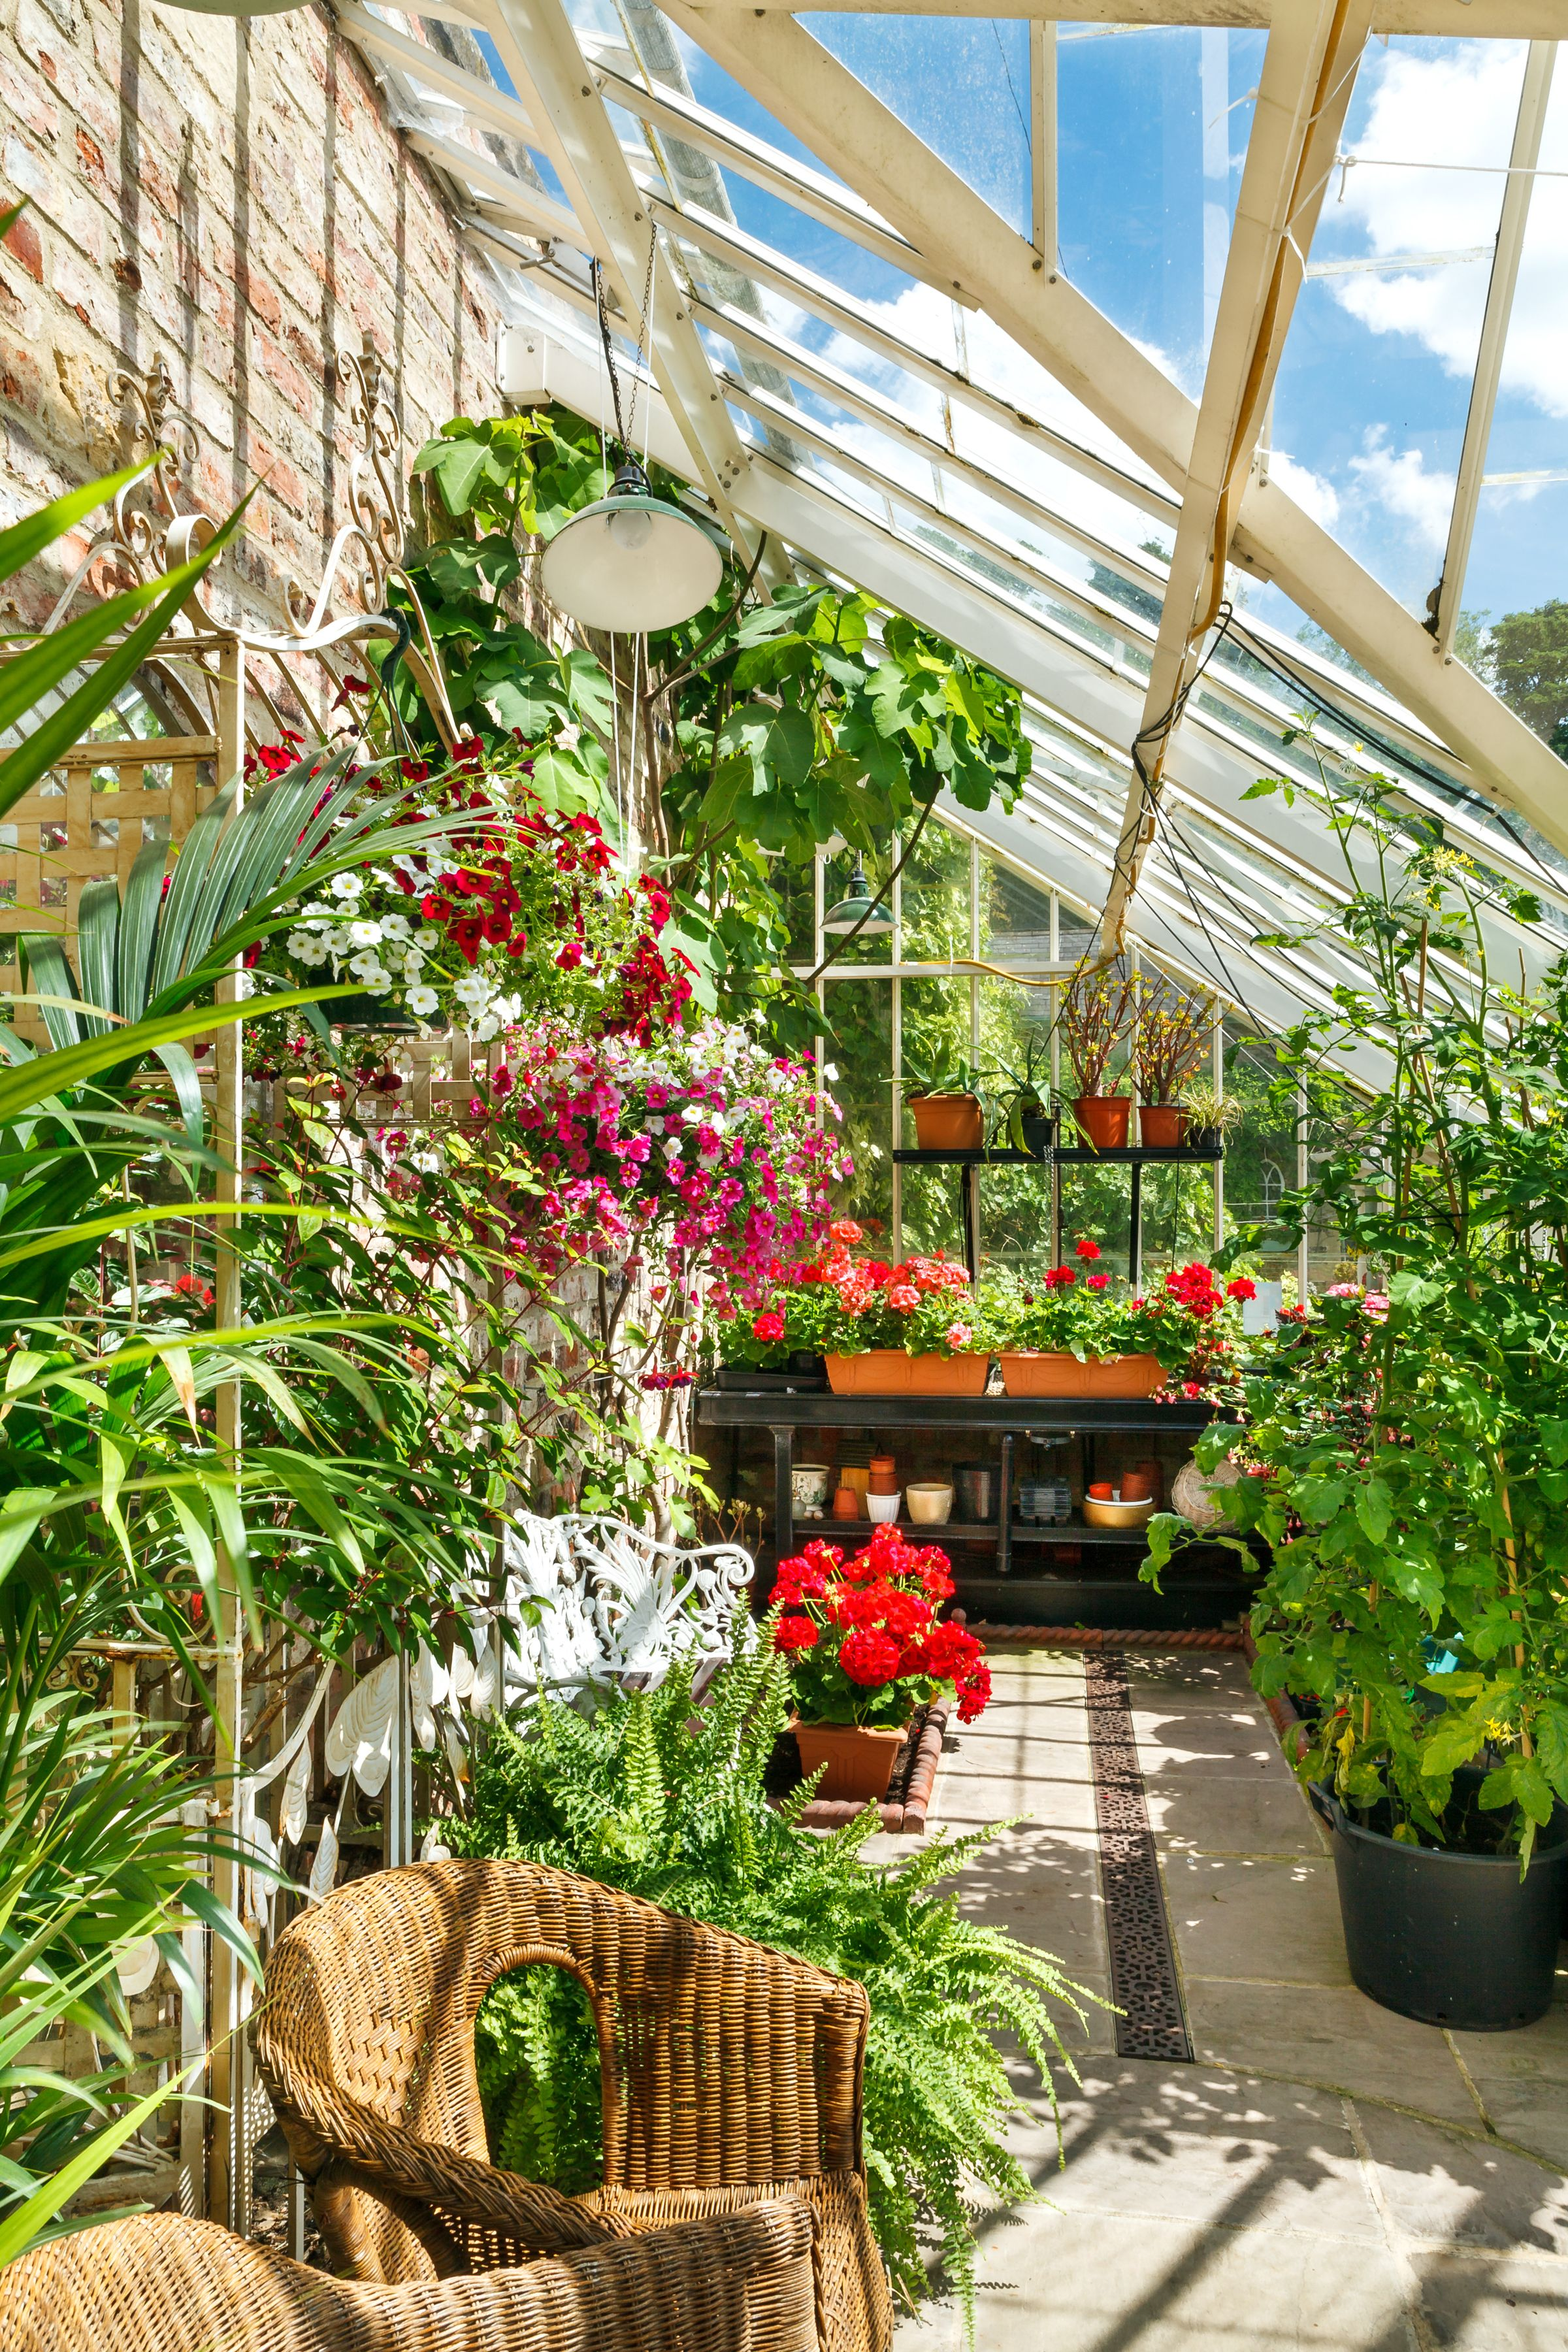 gardening shed pots man en idyllic podge free images botany wild floristry corner garden allotment greenhouse yard outdoor flower made after object photo work backyard hodge structure